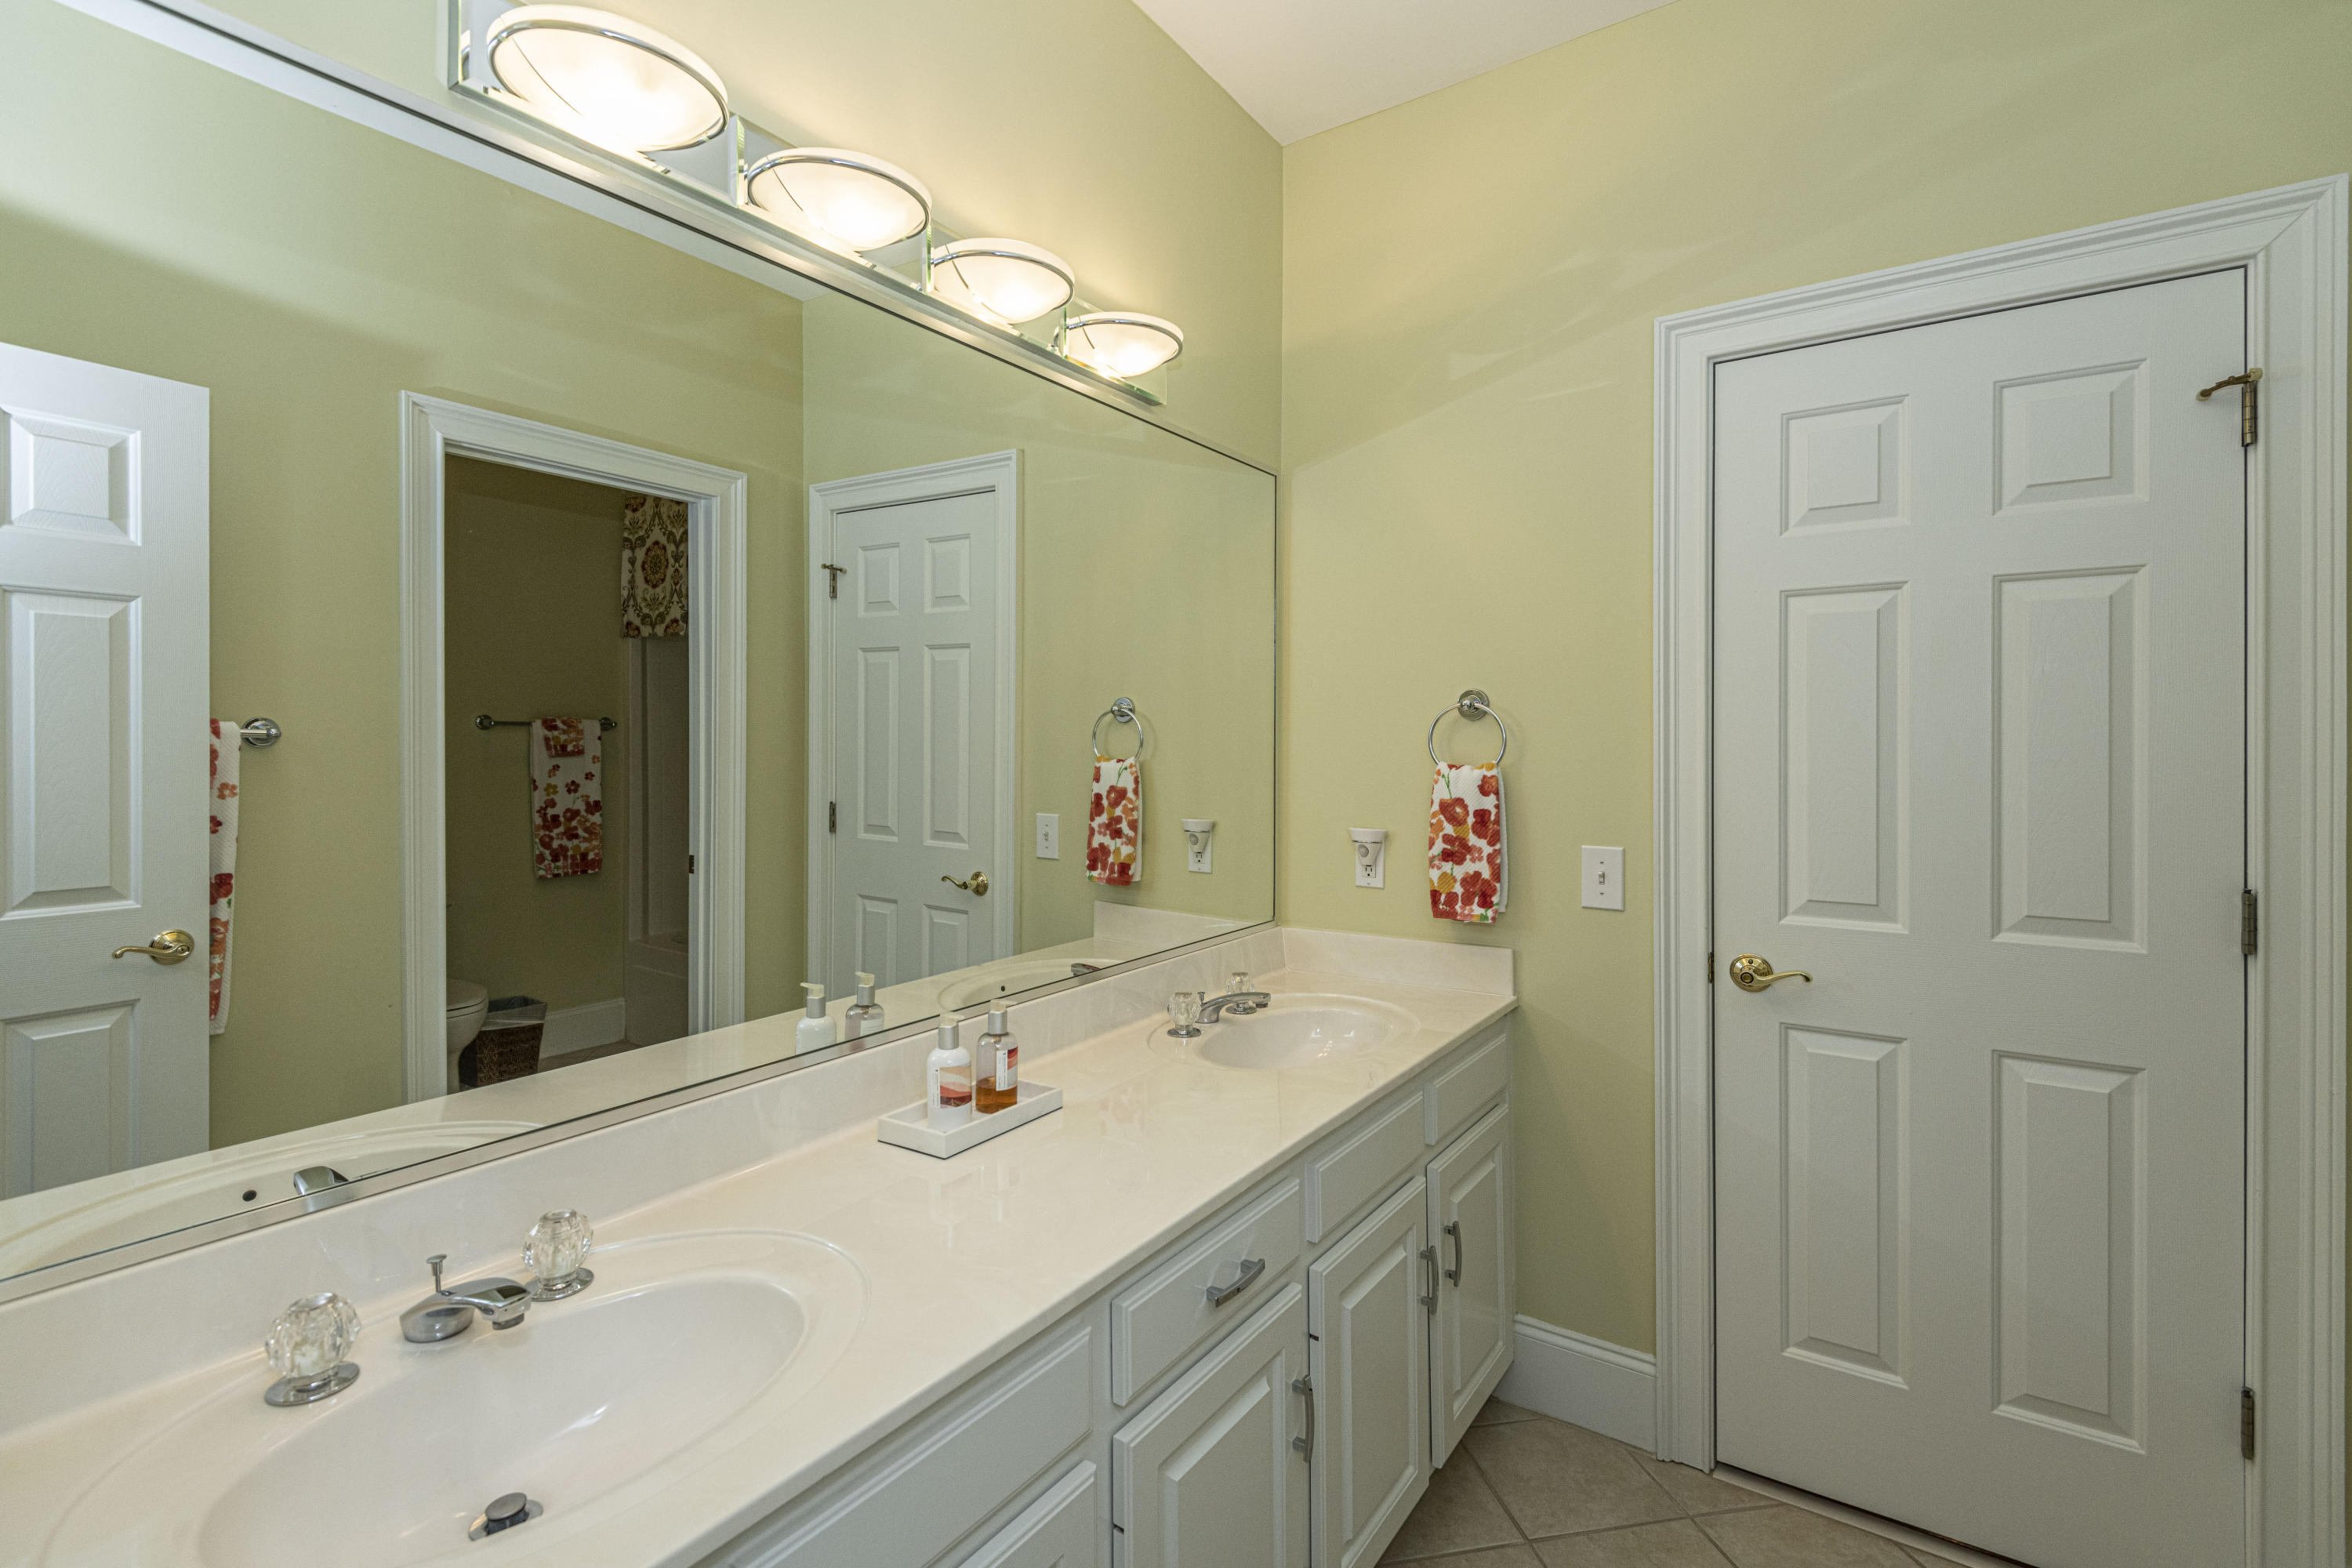 Dunes West Homes For Sale - 1837 Shell Ring, Mount Pleasant, SC - 1